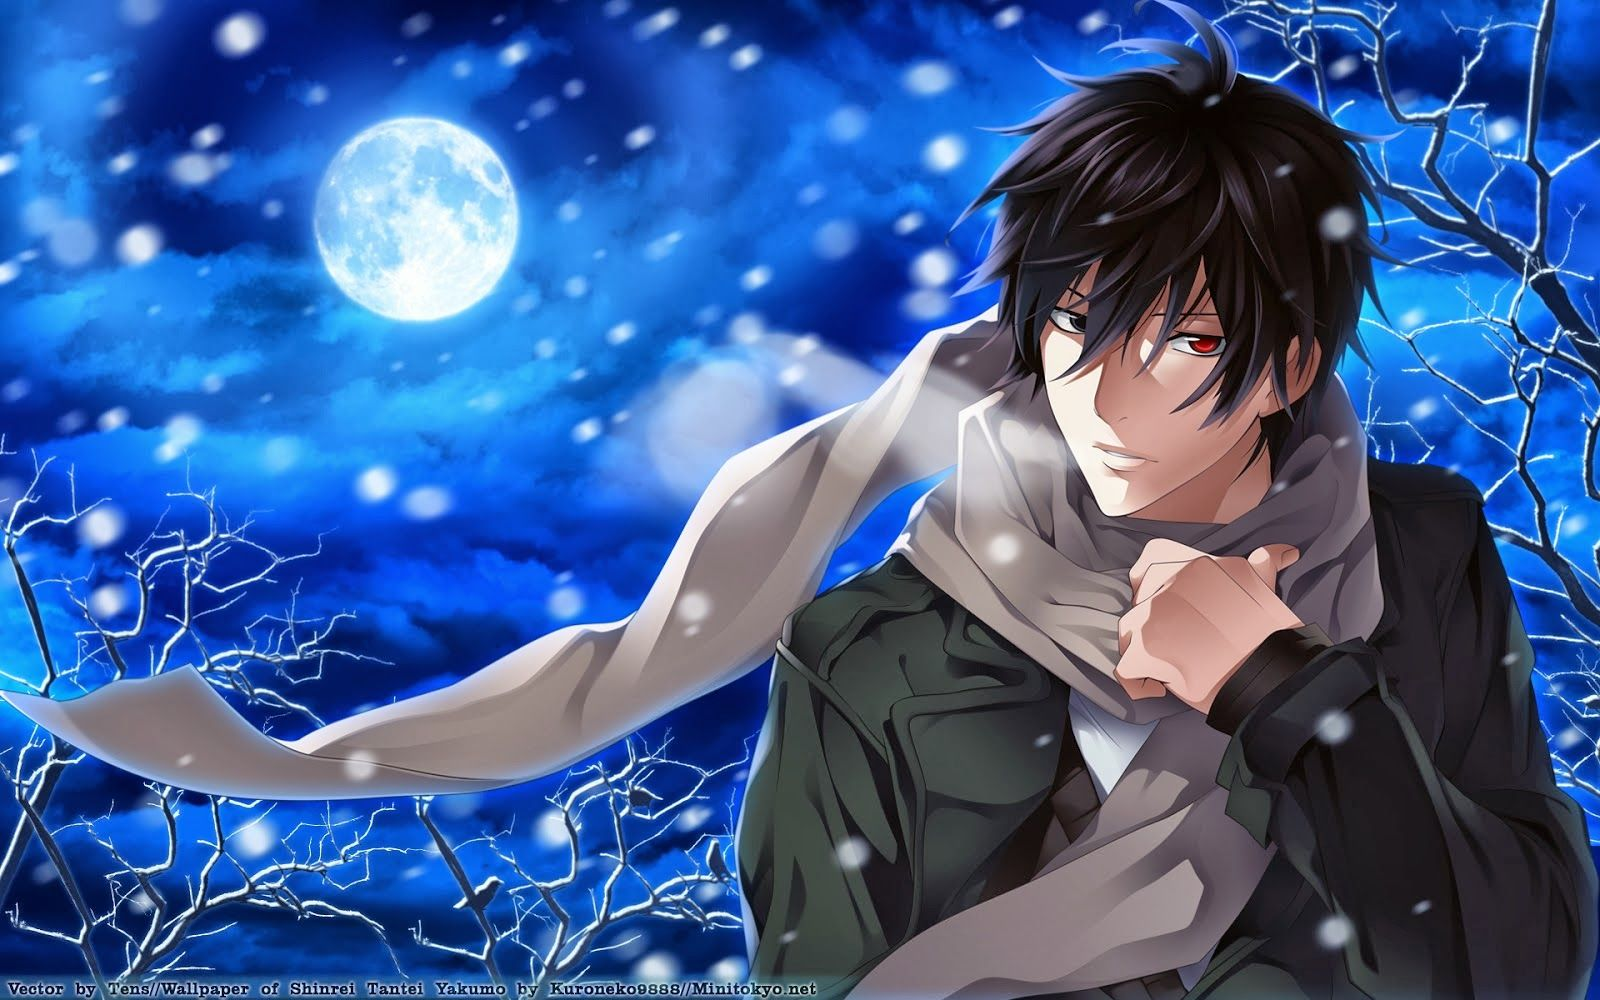 Anime Boy Wallpapers Hd Shinrei Tantei Yakumo Anime Guys